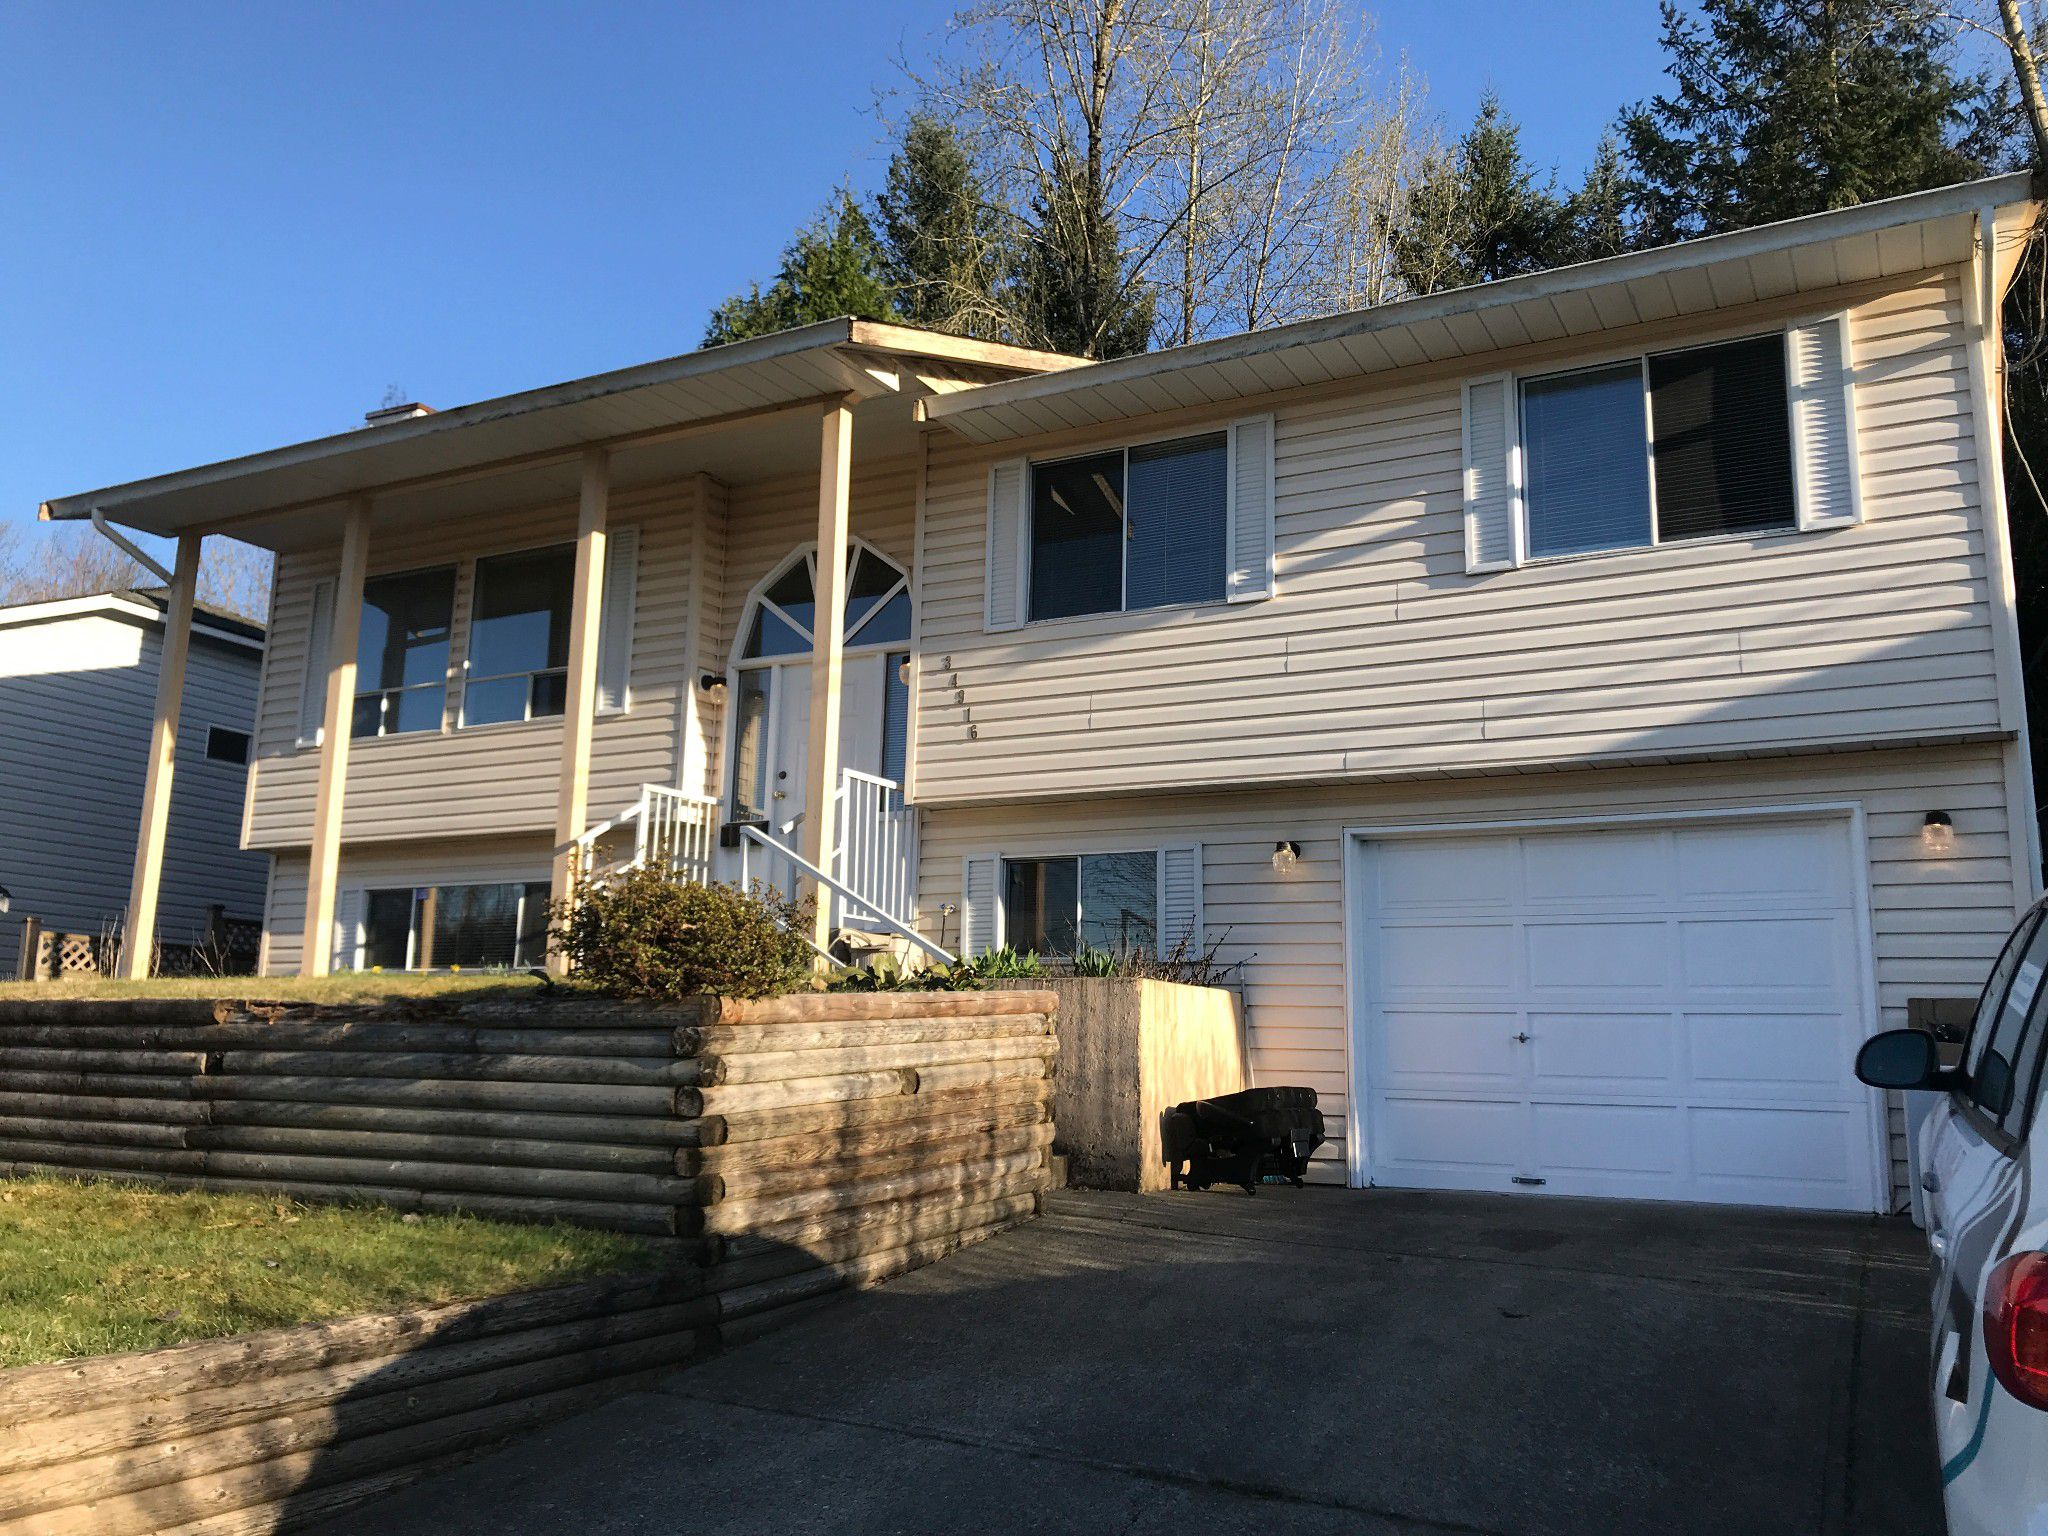 Main Photo: 34916 High Dr. in Abbotsford: Abbotsford East House for rent